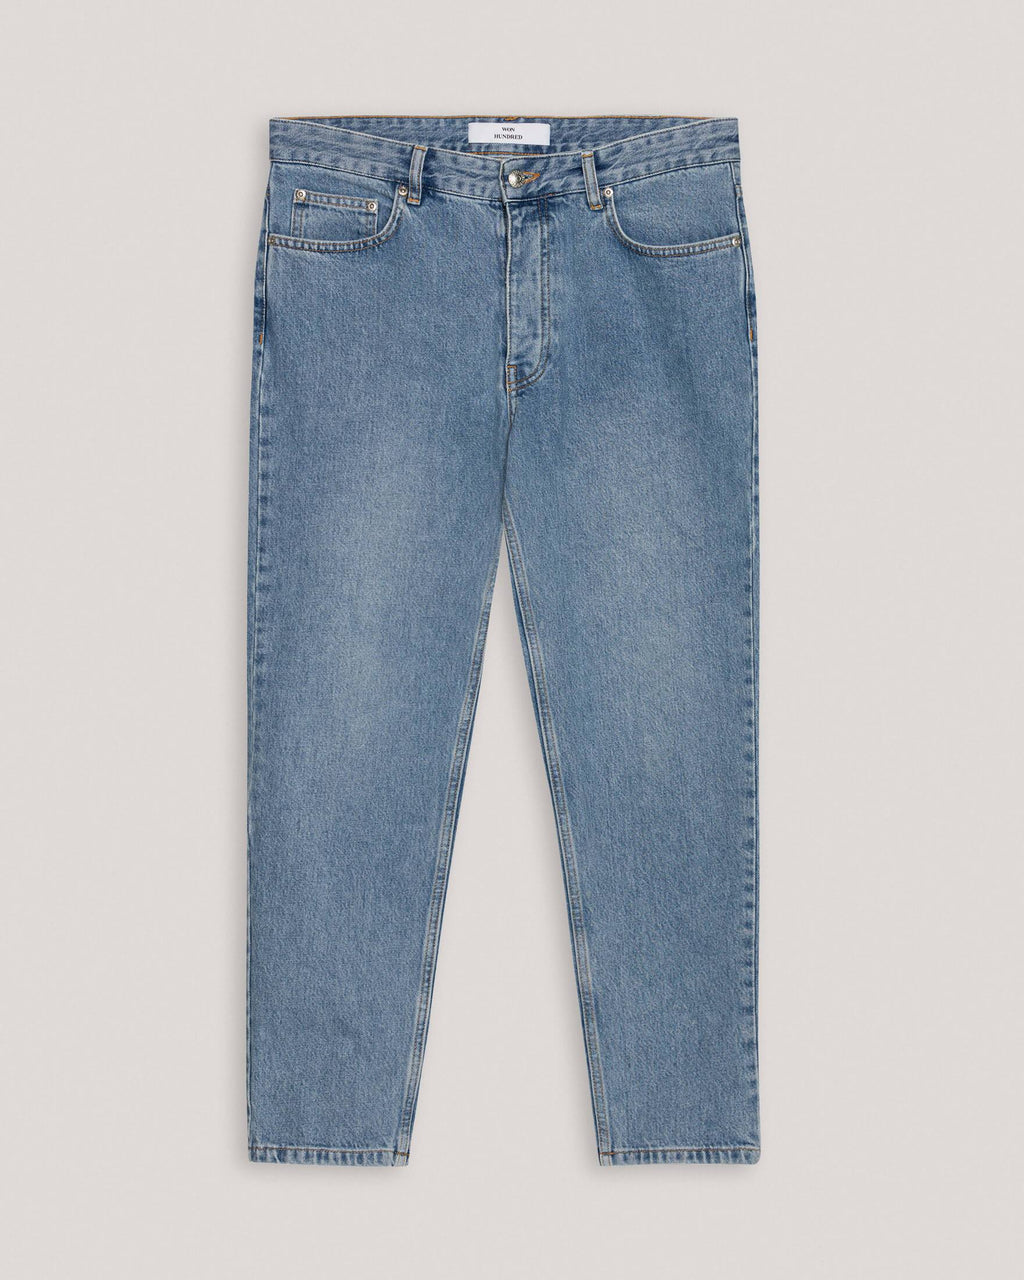 variant_1 | EN Blue Jeans Trousers Men won hundred | DE Blaue Jeans Hose Herren won hundred